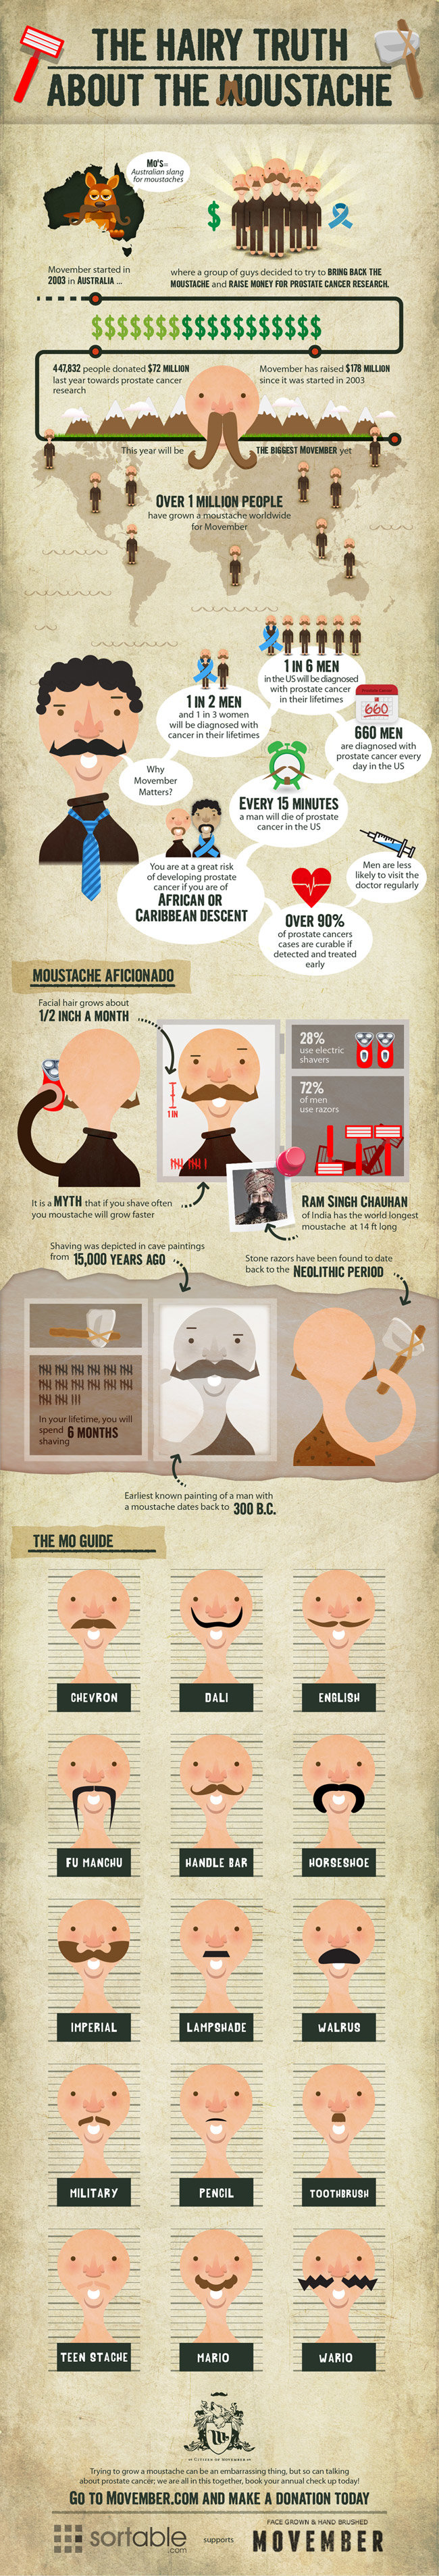 the hairy truth a bout the moustache #infographic